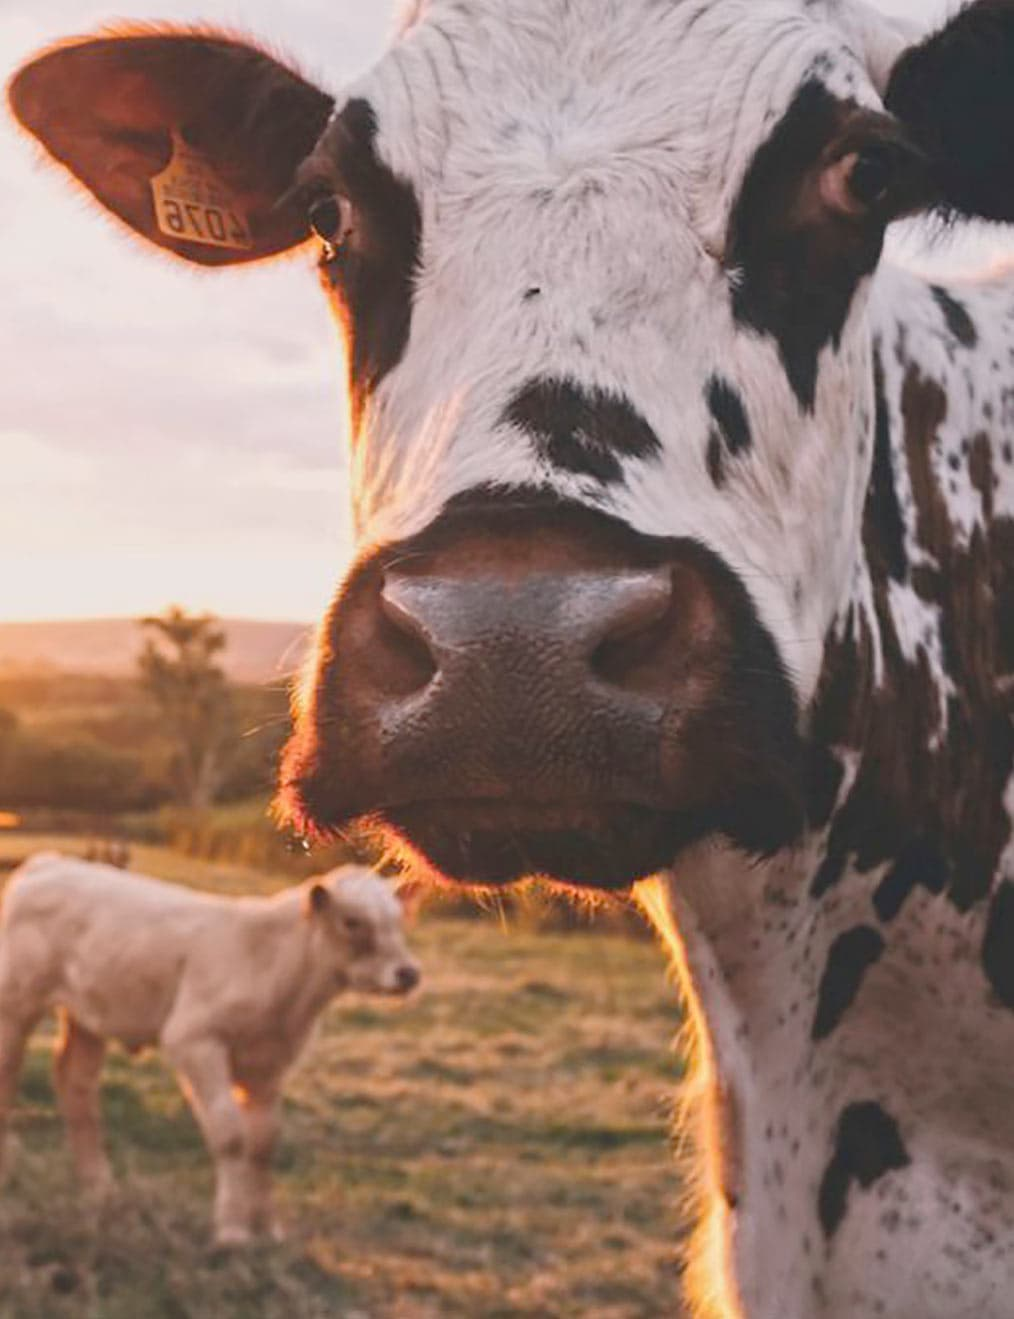 Are you treating your customers more like cattle?